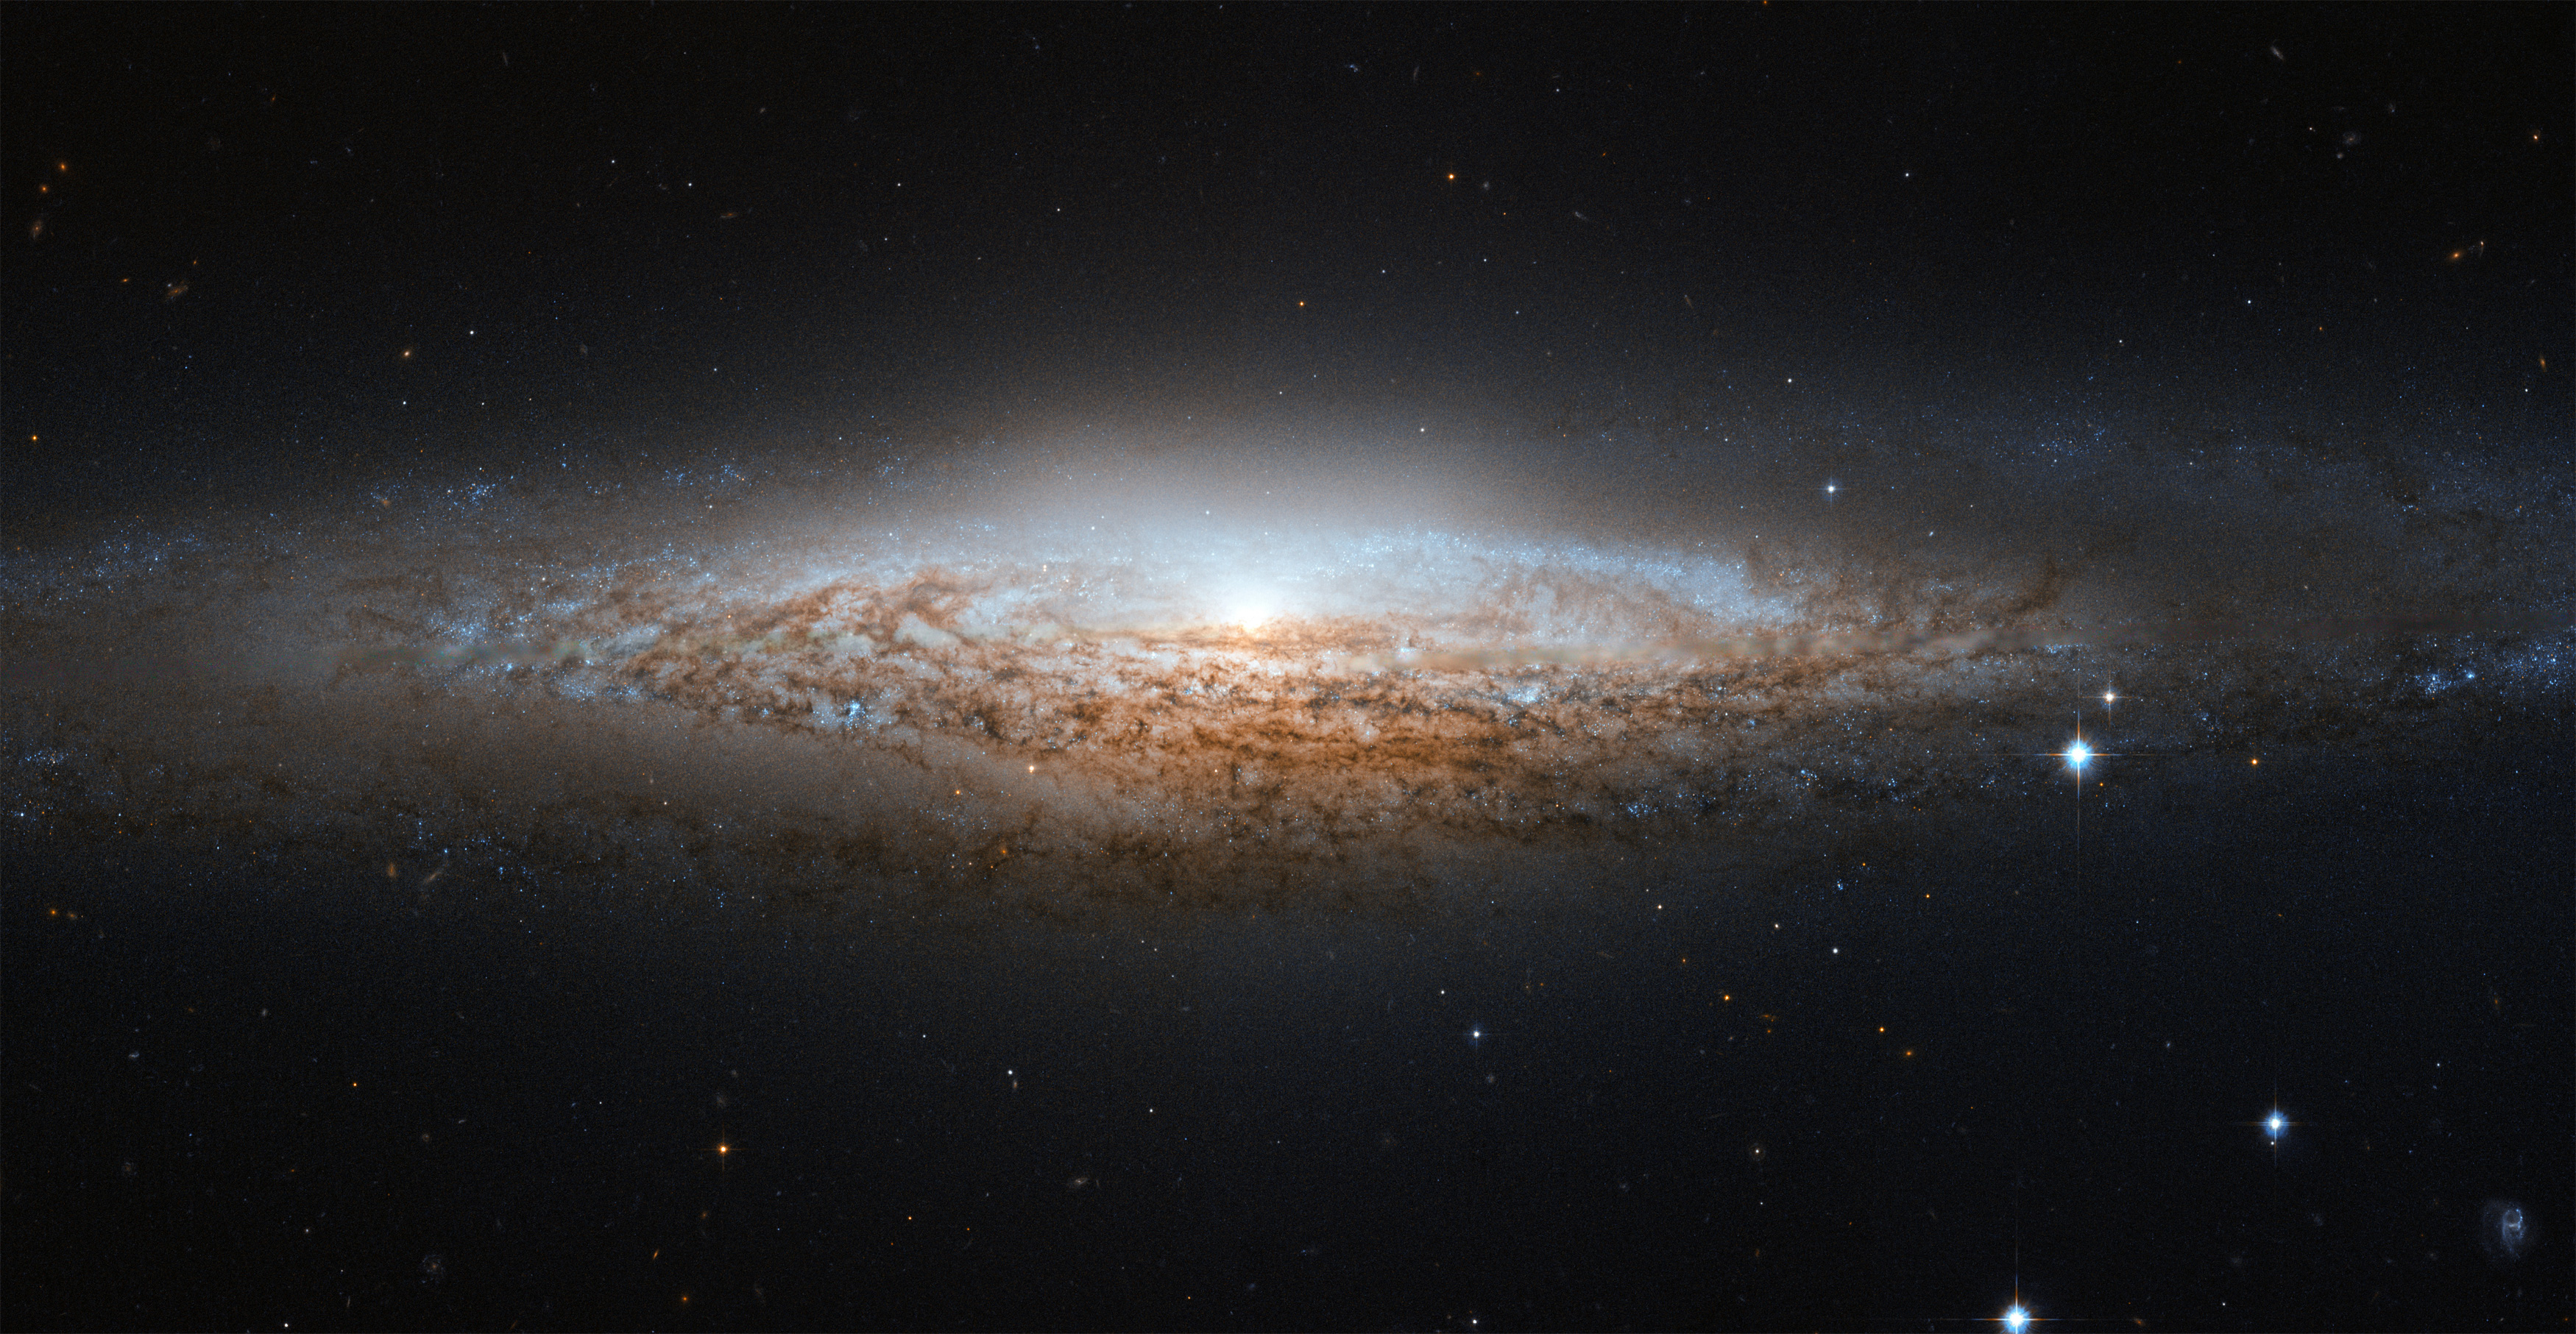 Hubble Spies a Spiral Galaxy Edge-on | NASA